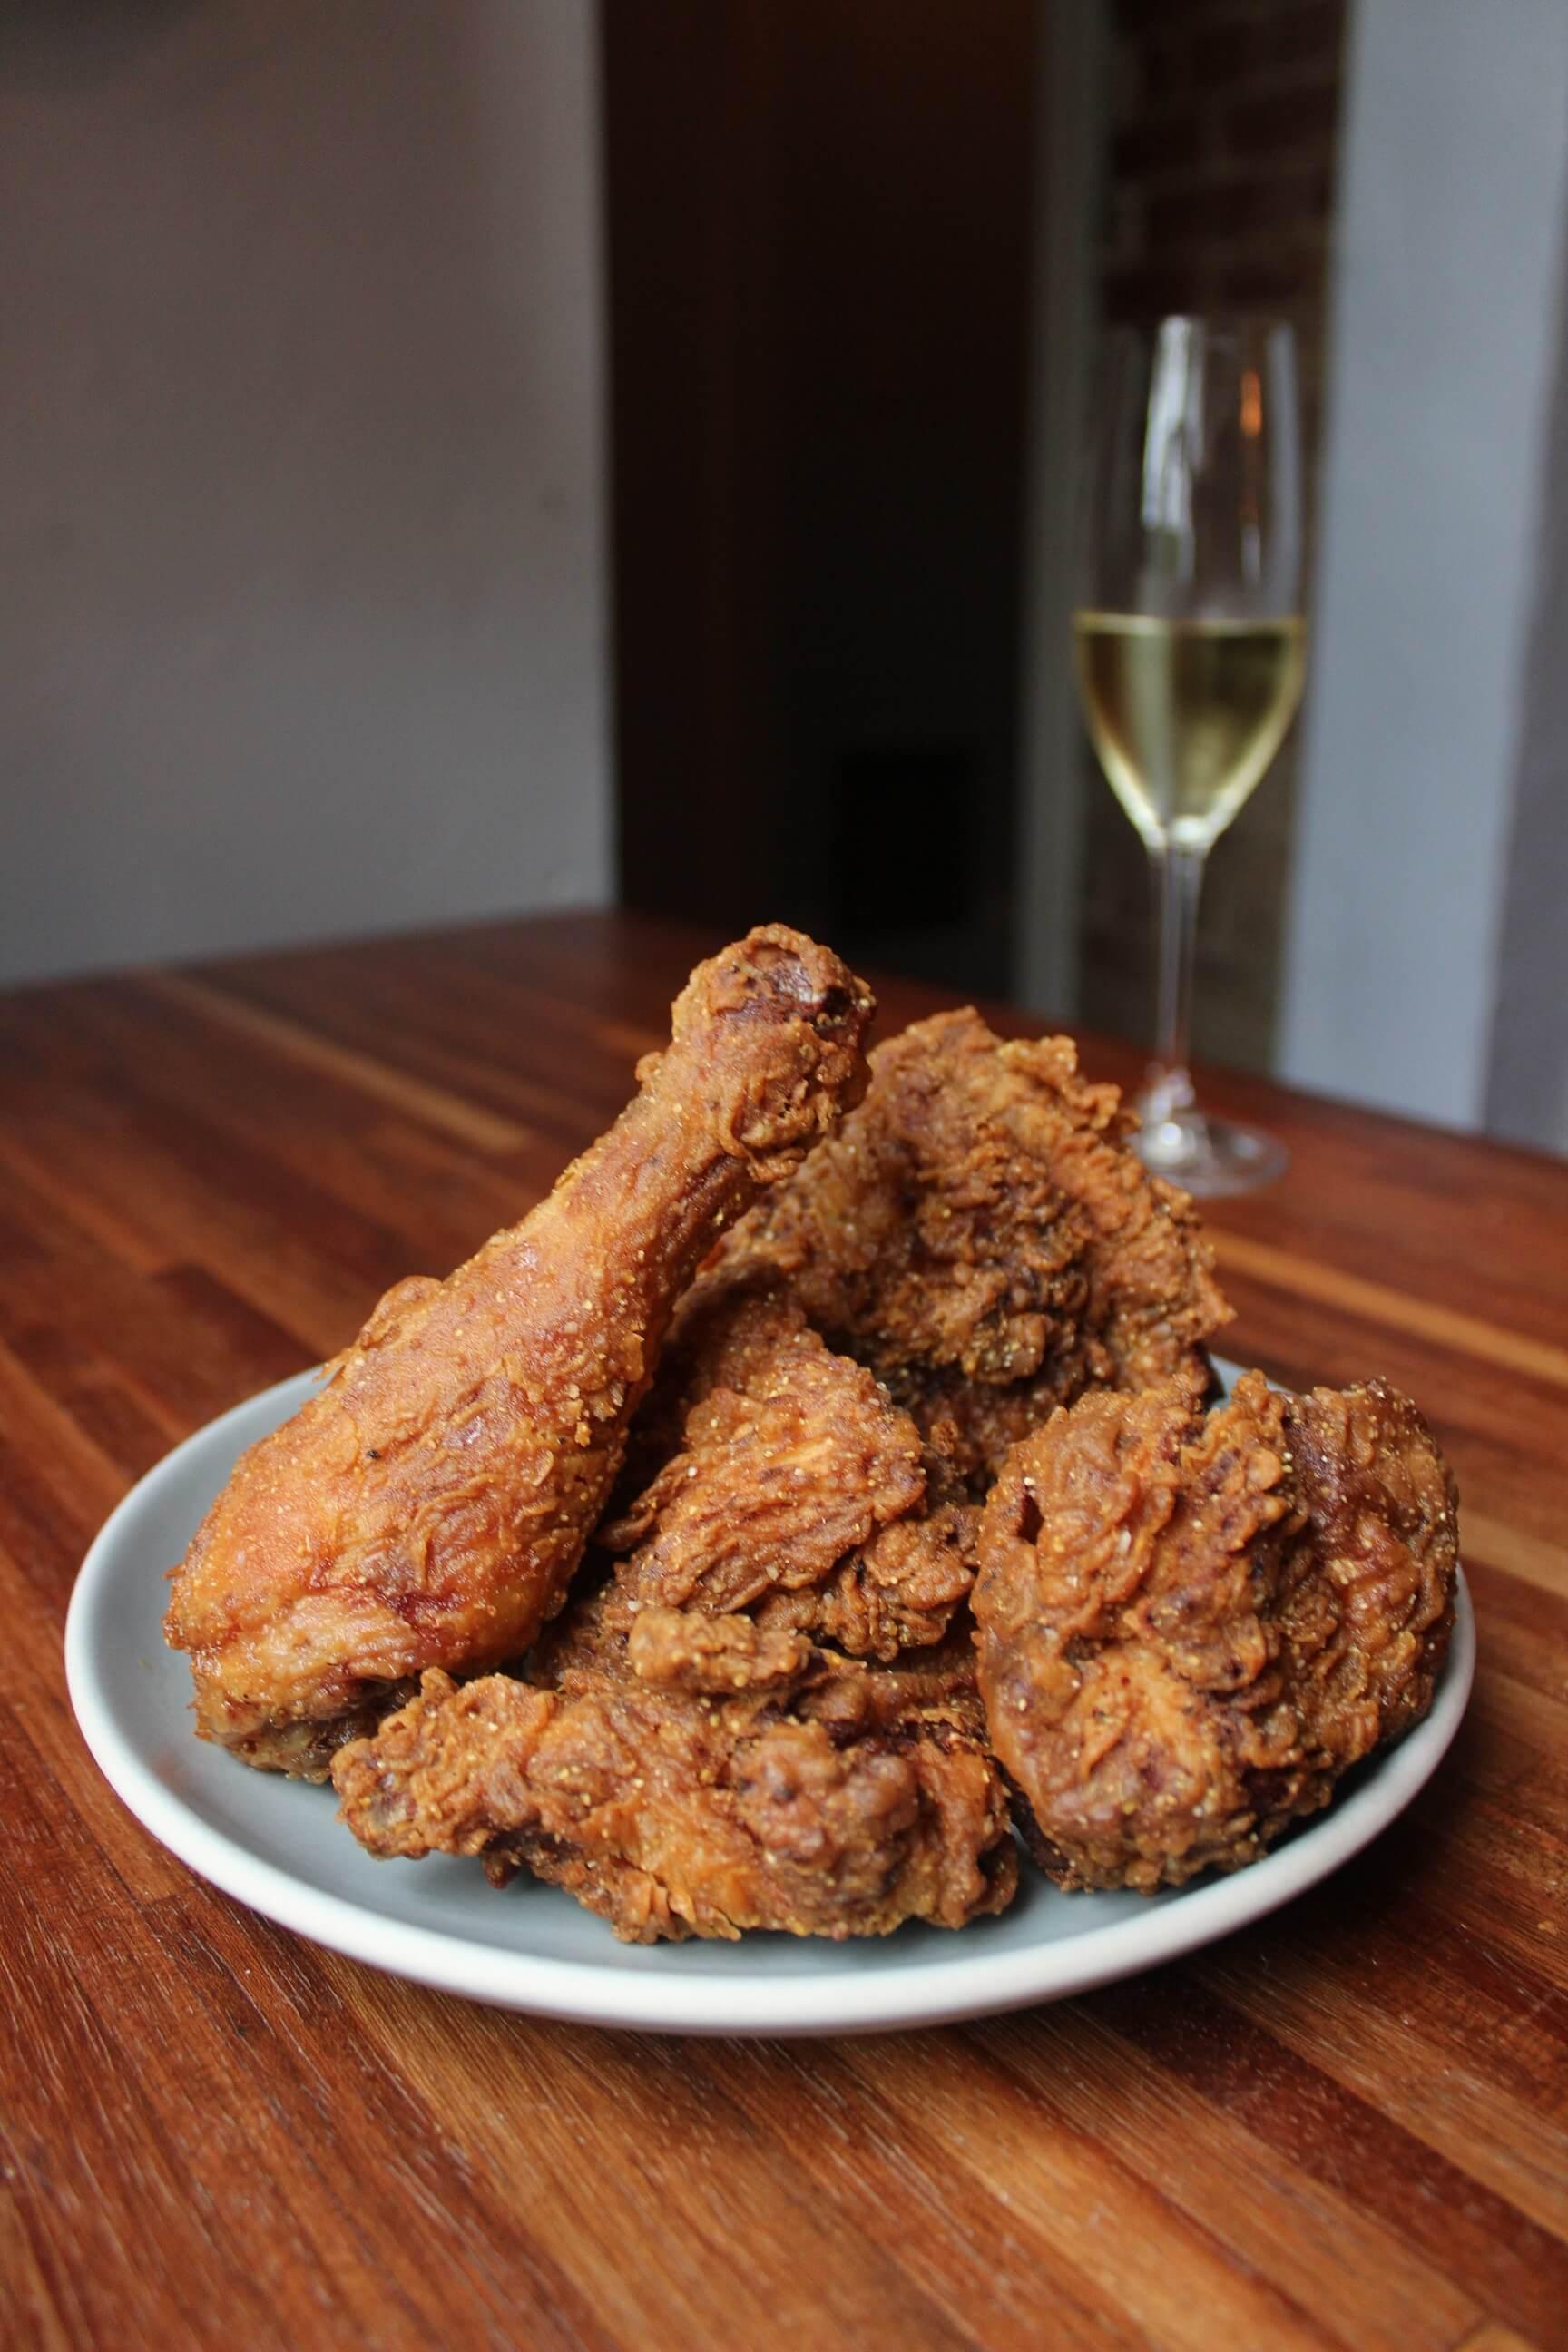 Fried chicken and Champagne at Coquette in New Orleans - Fried chicken and sparkling wine pairings